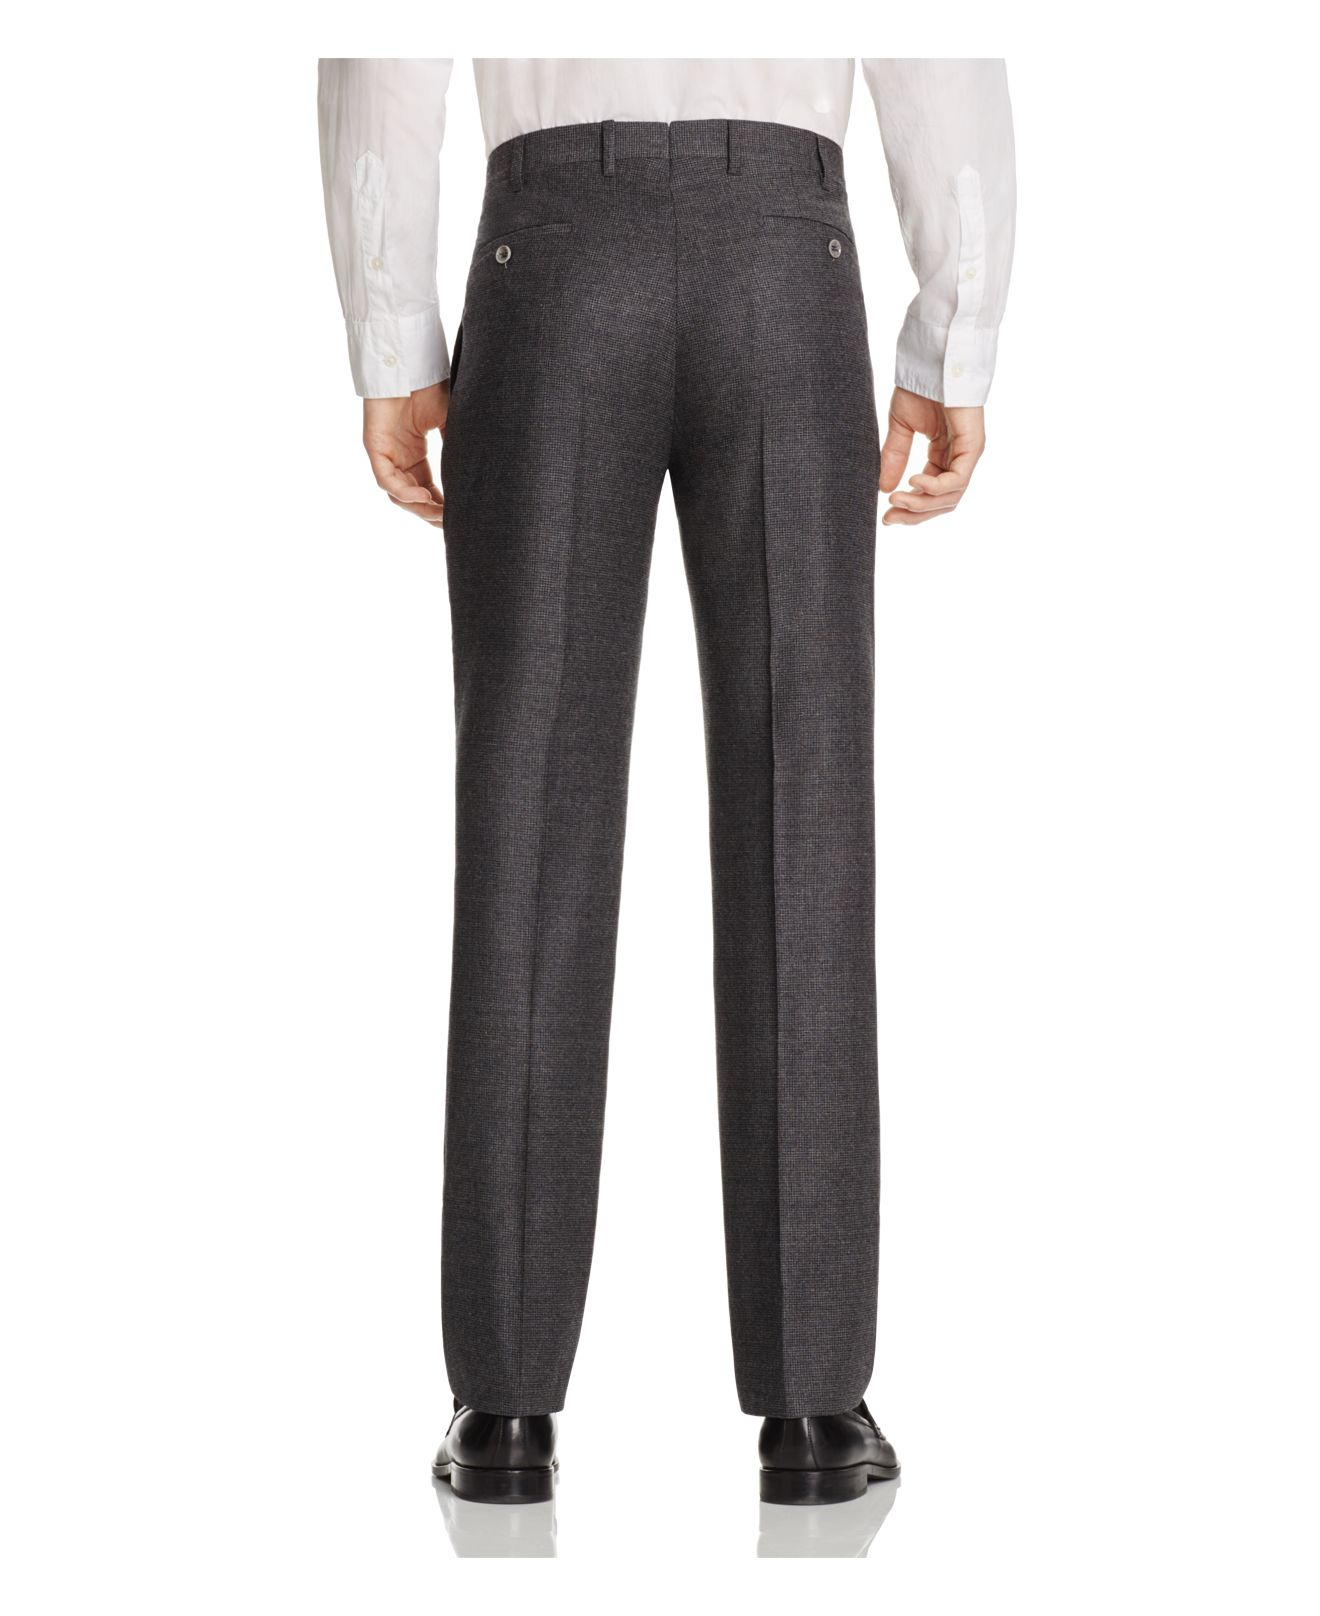 Valentini S150s Check Two Pattern Flannel Regular Fit Trousers - 100% Bloomingdale's Exclusive in Grey (Grey) for Men